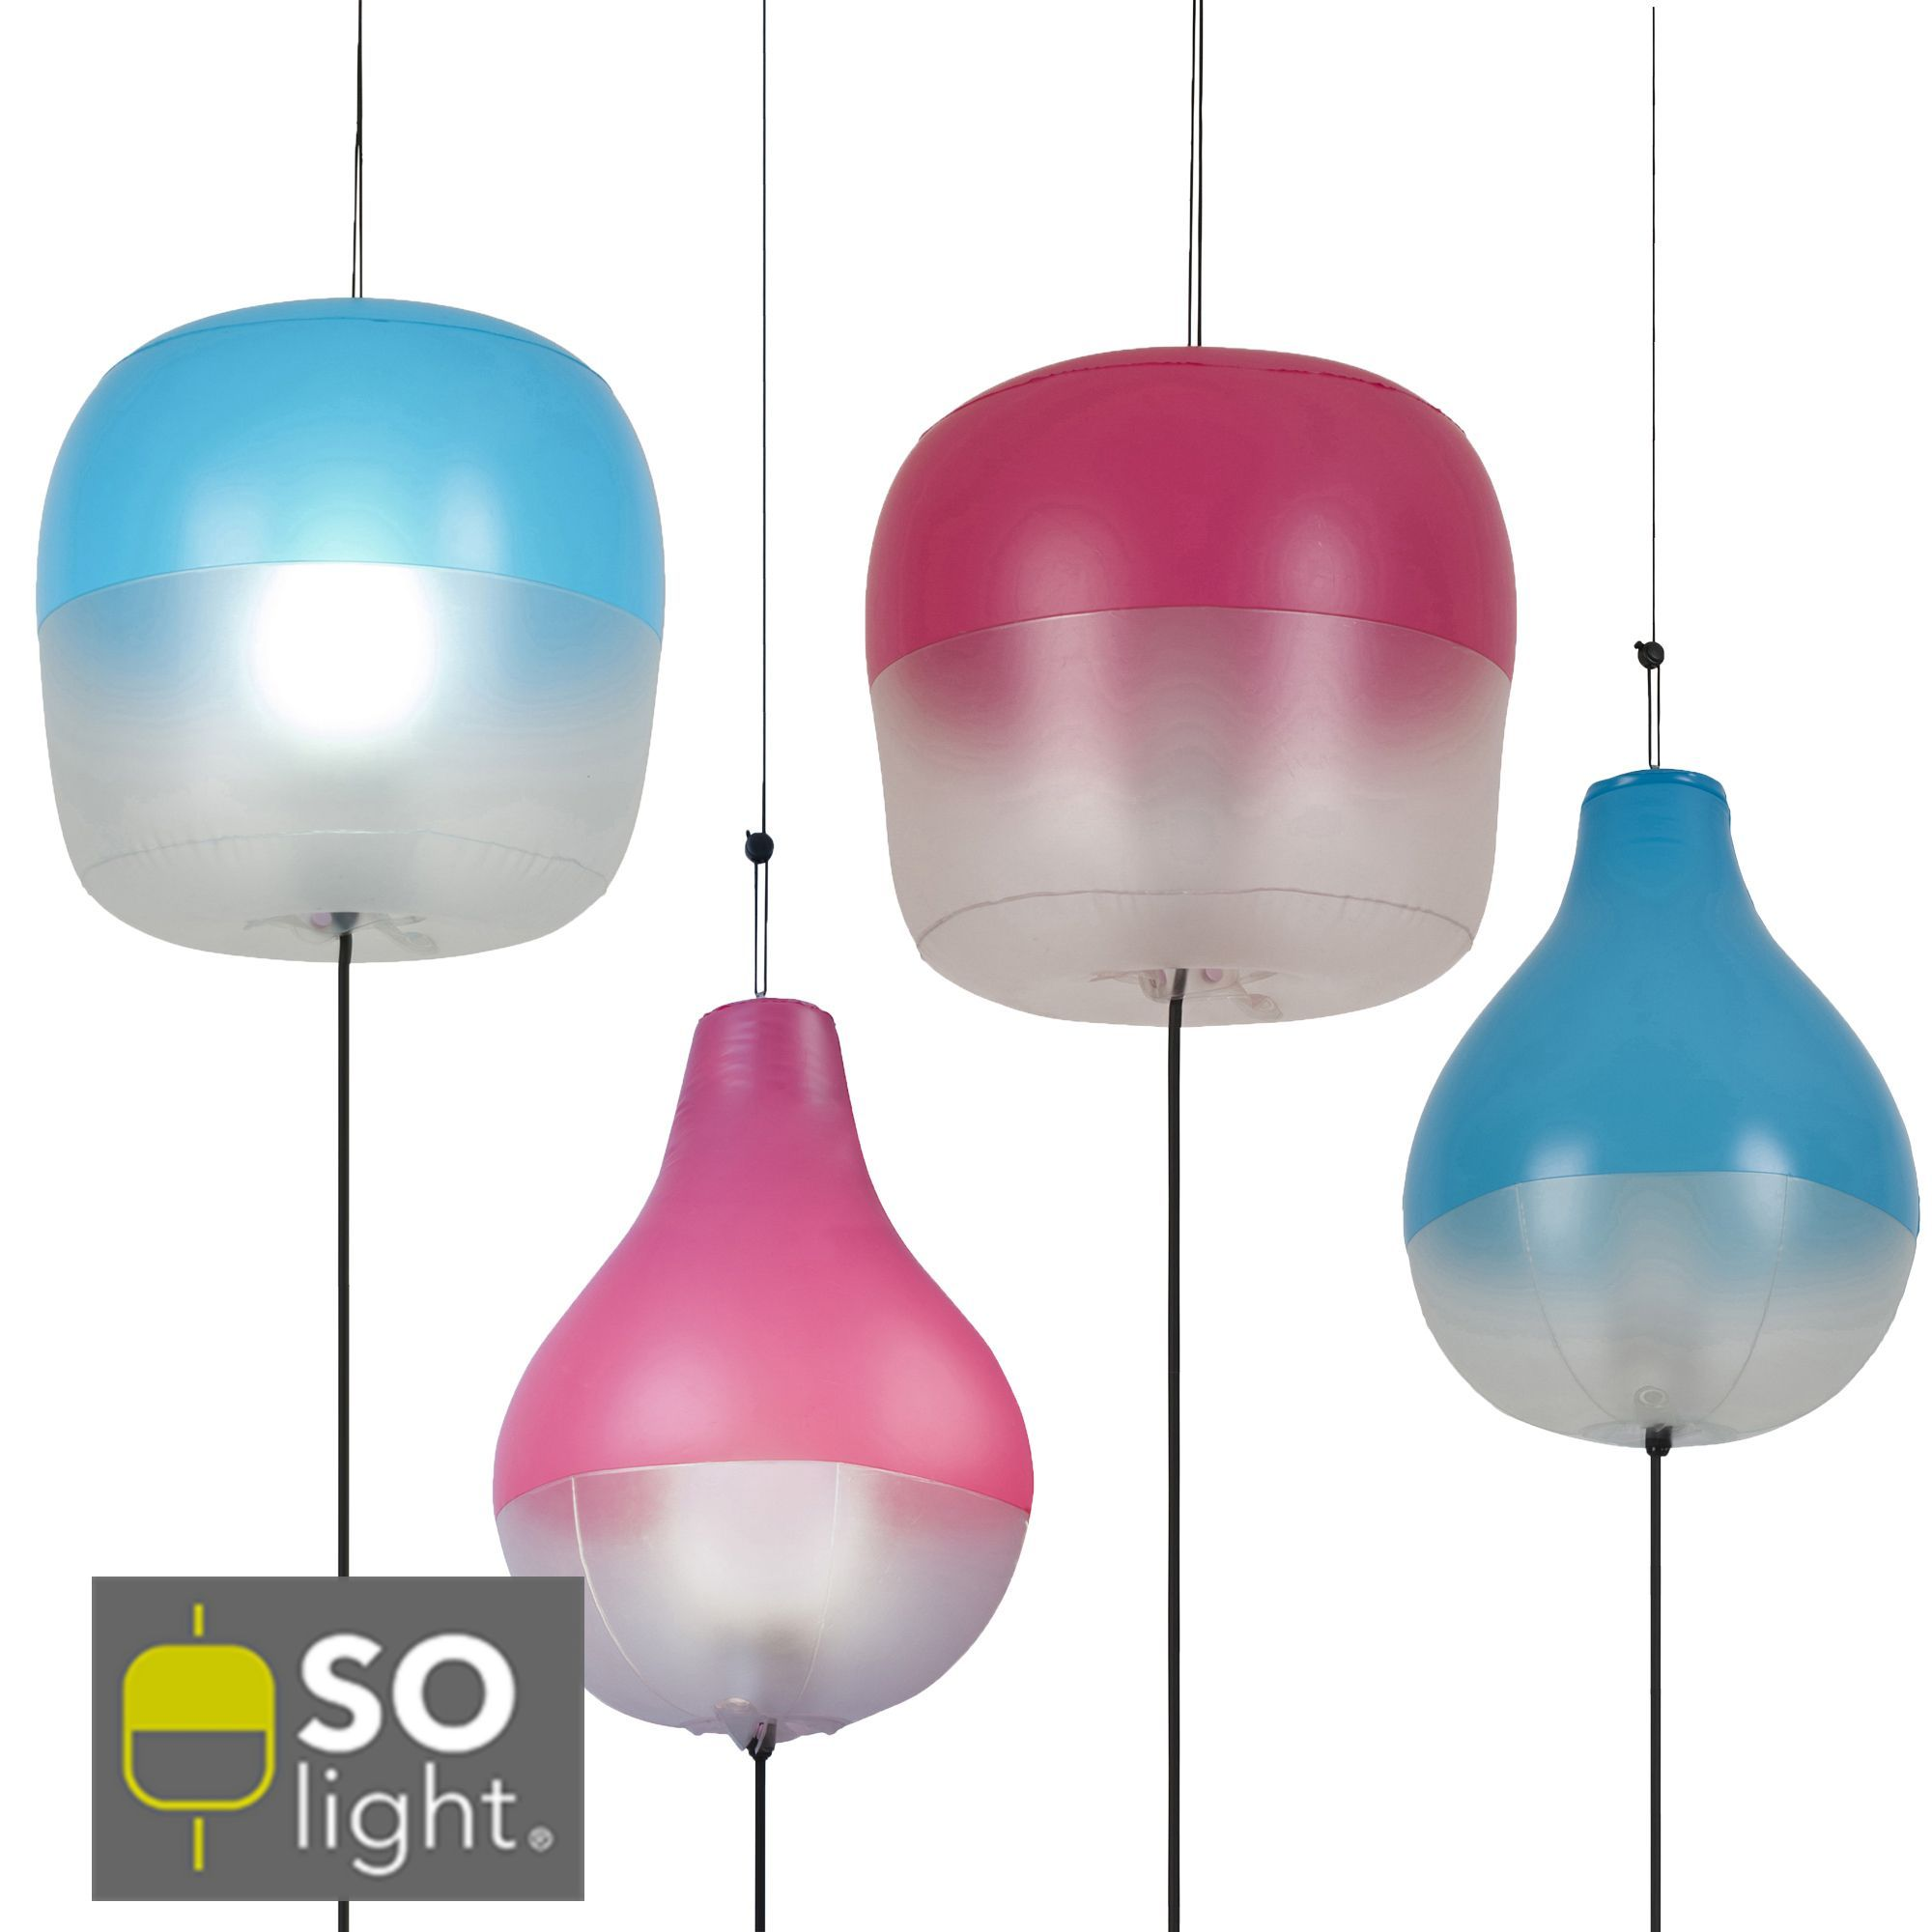 s lection de luminaires d 39 ext rieur gonflables fuchsia turquoise fuchsia turquoise so light. Black Bedroom Furniture Sets. Home Design Ideas